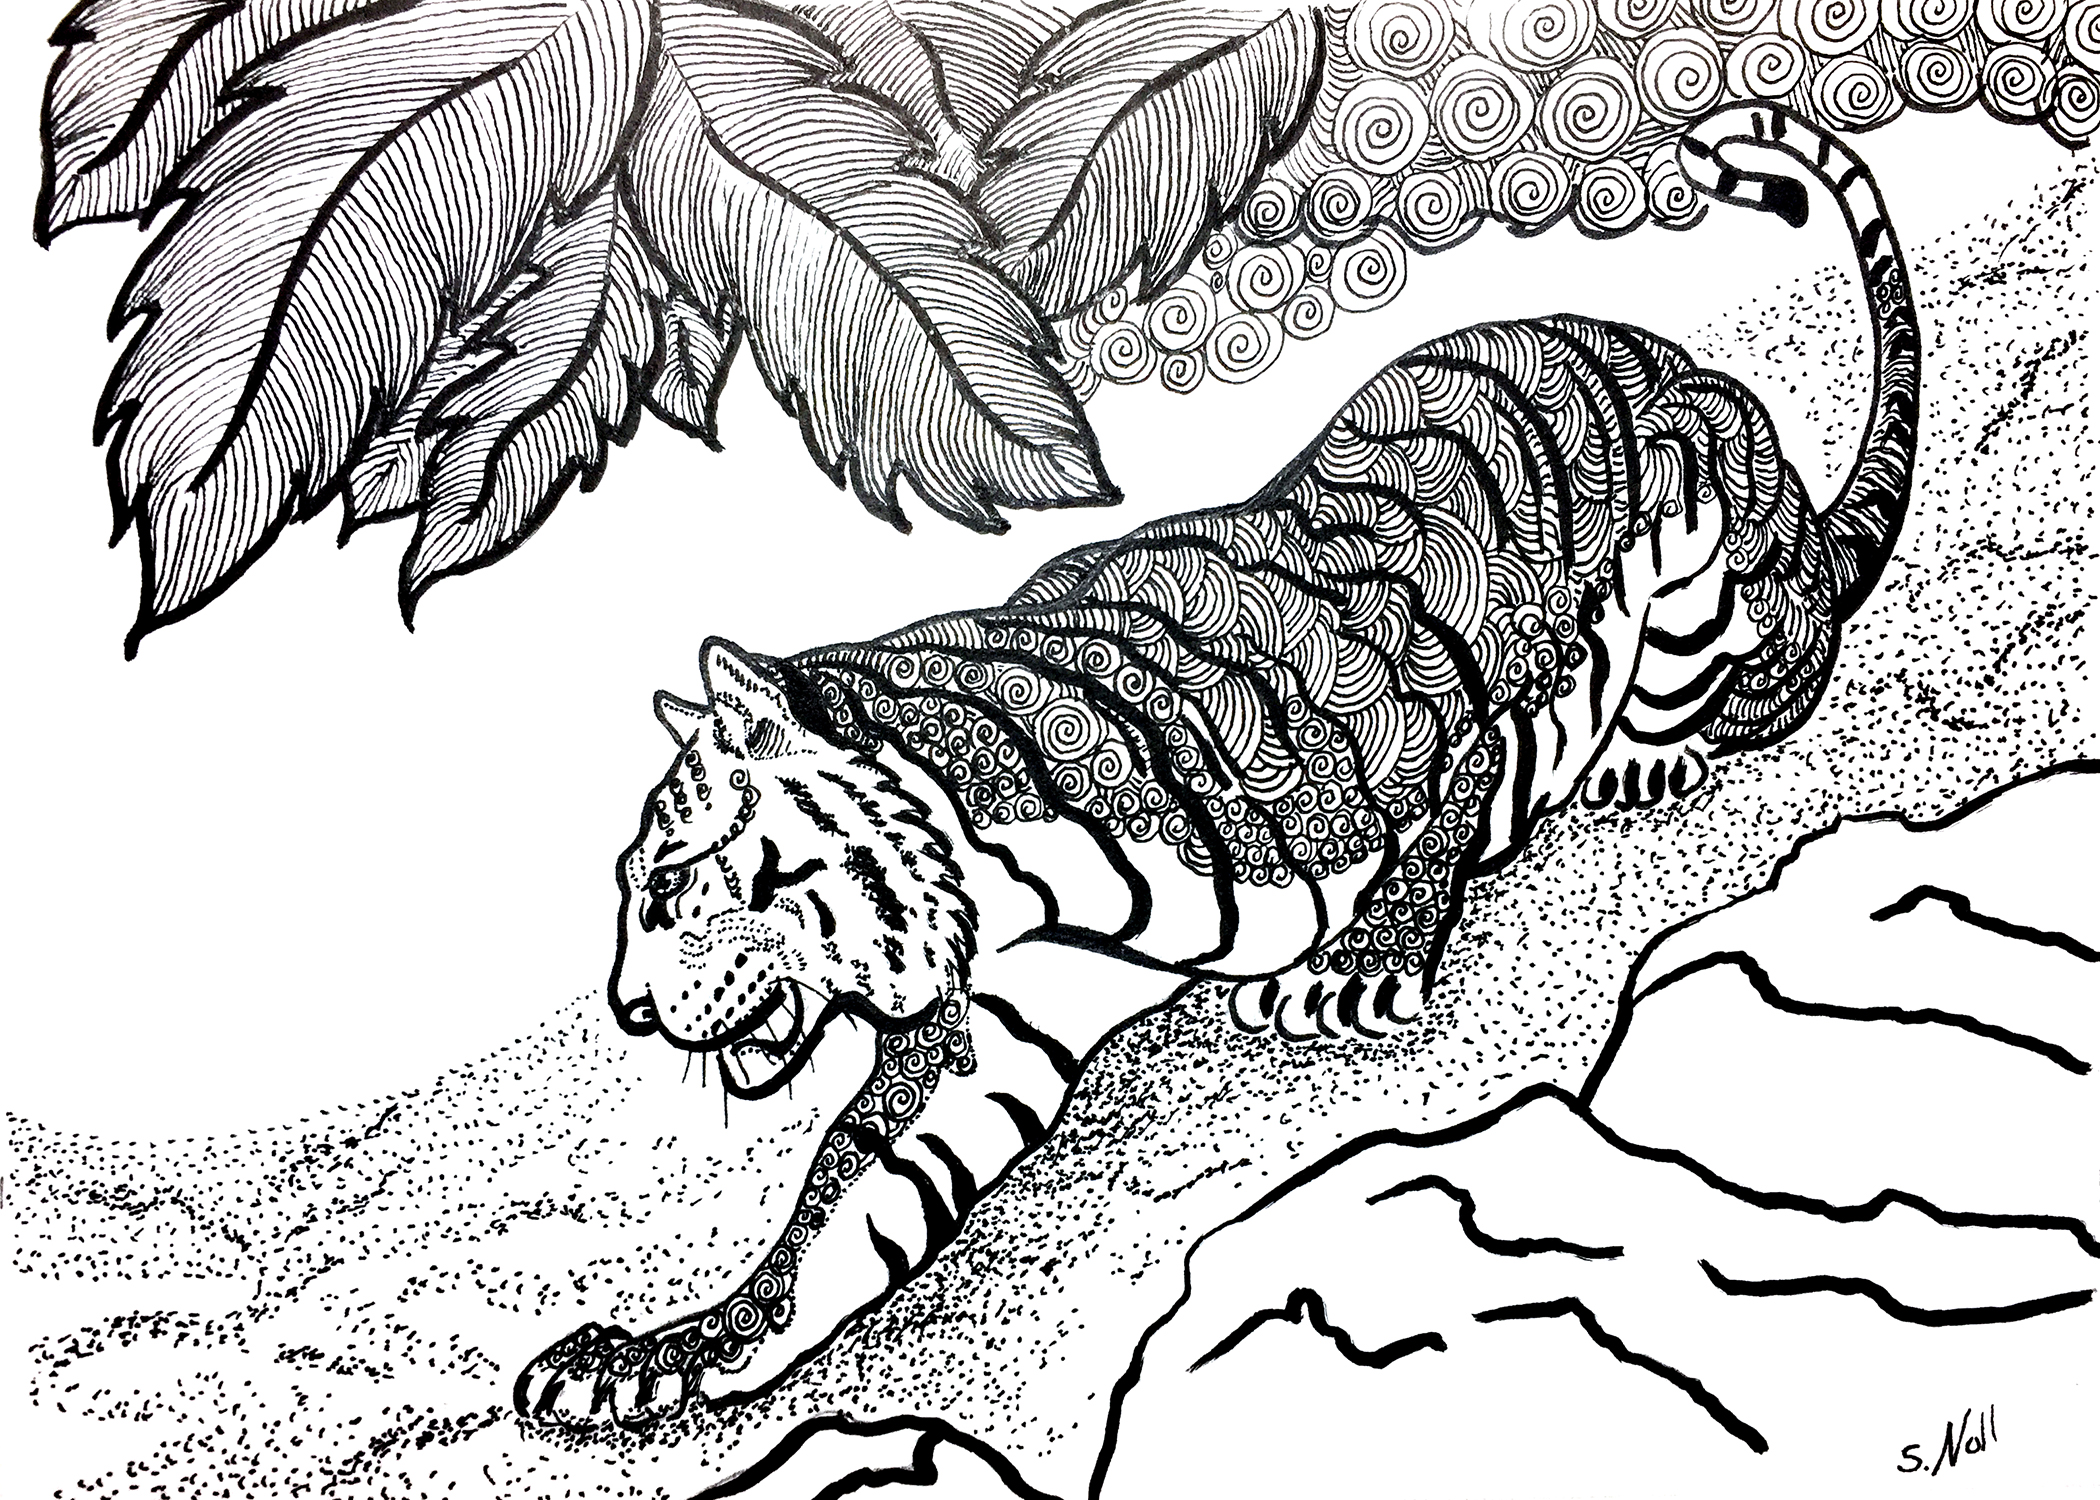 Tiger in Pen & Ink